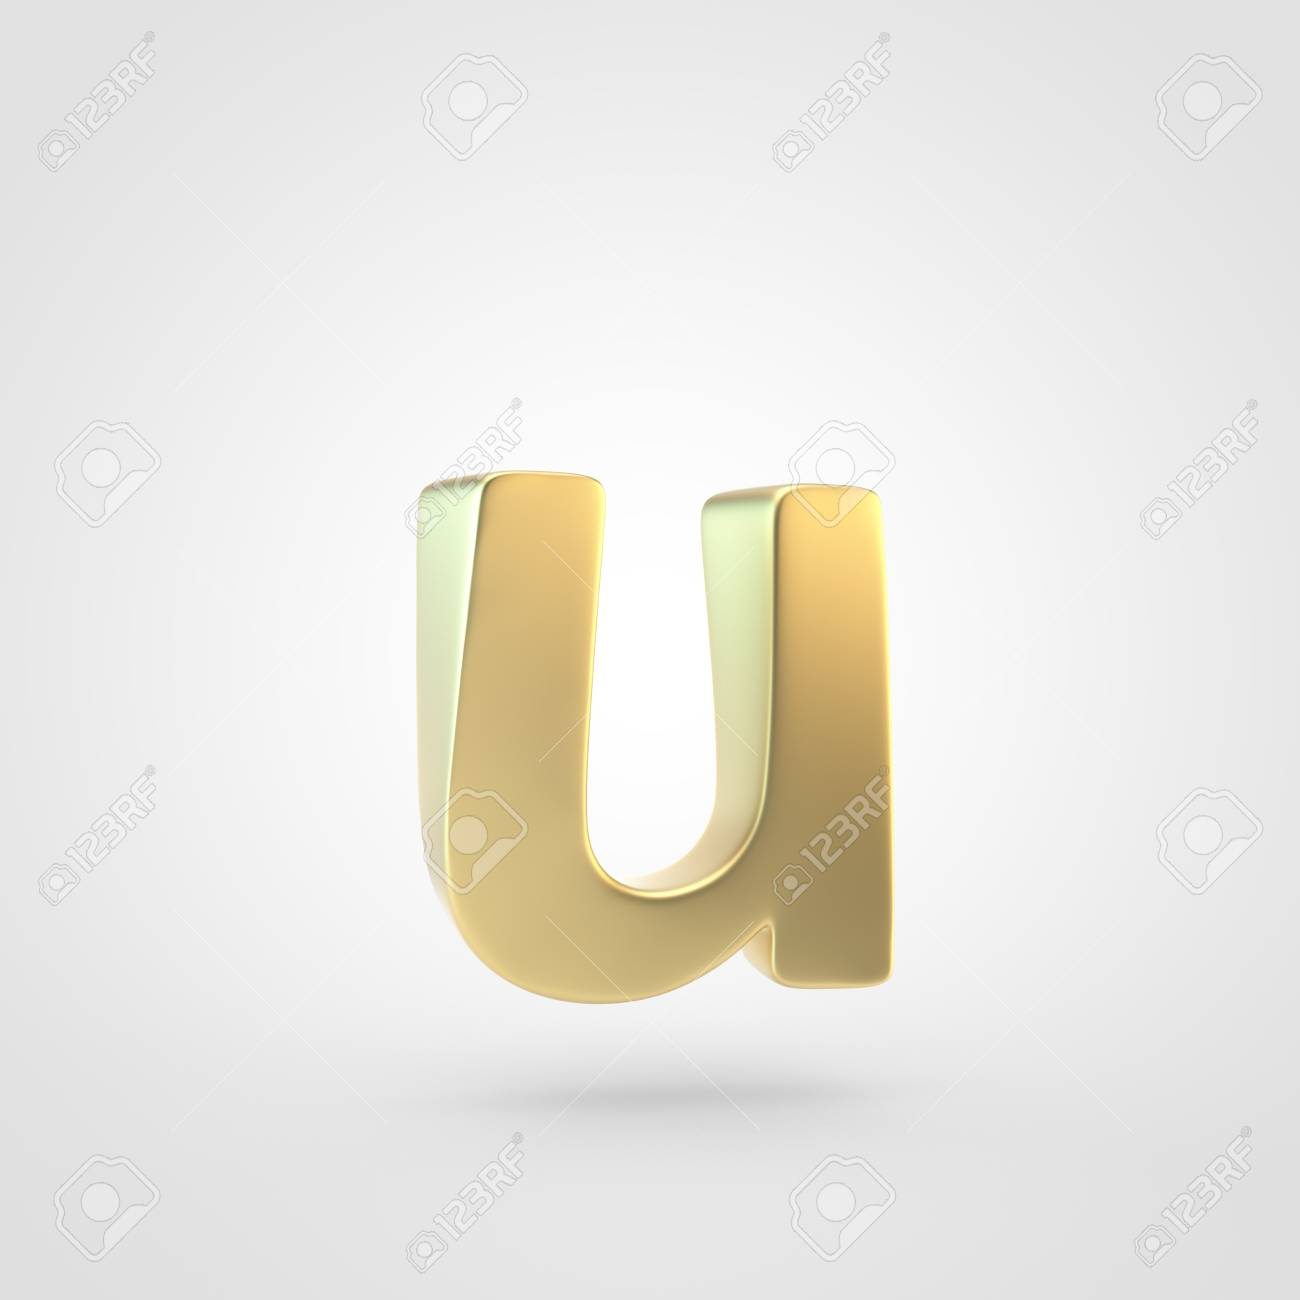 Golden Letter U Lowercase 3D Rendering Of Matted Golden Font 1300x1300